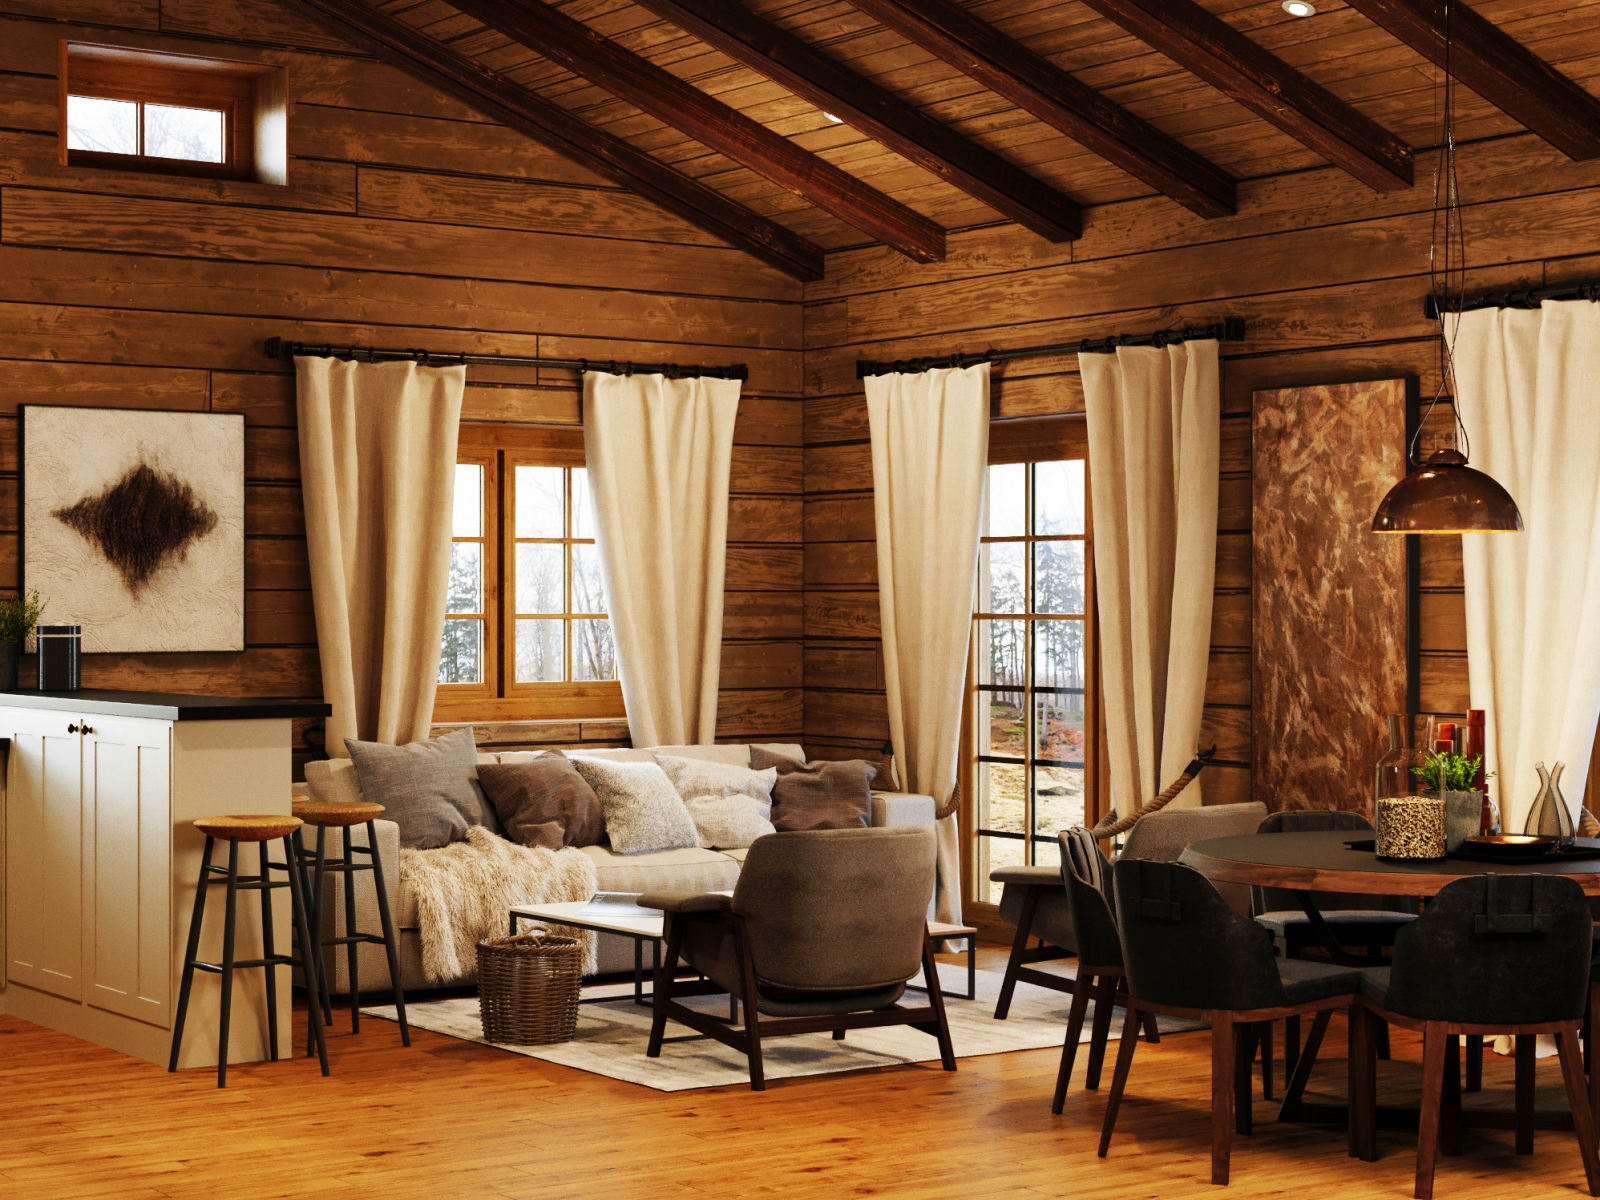 Interior Visualisation of a Chalet in the Alps